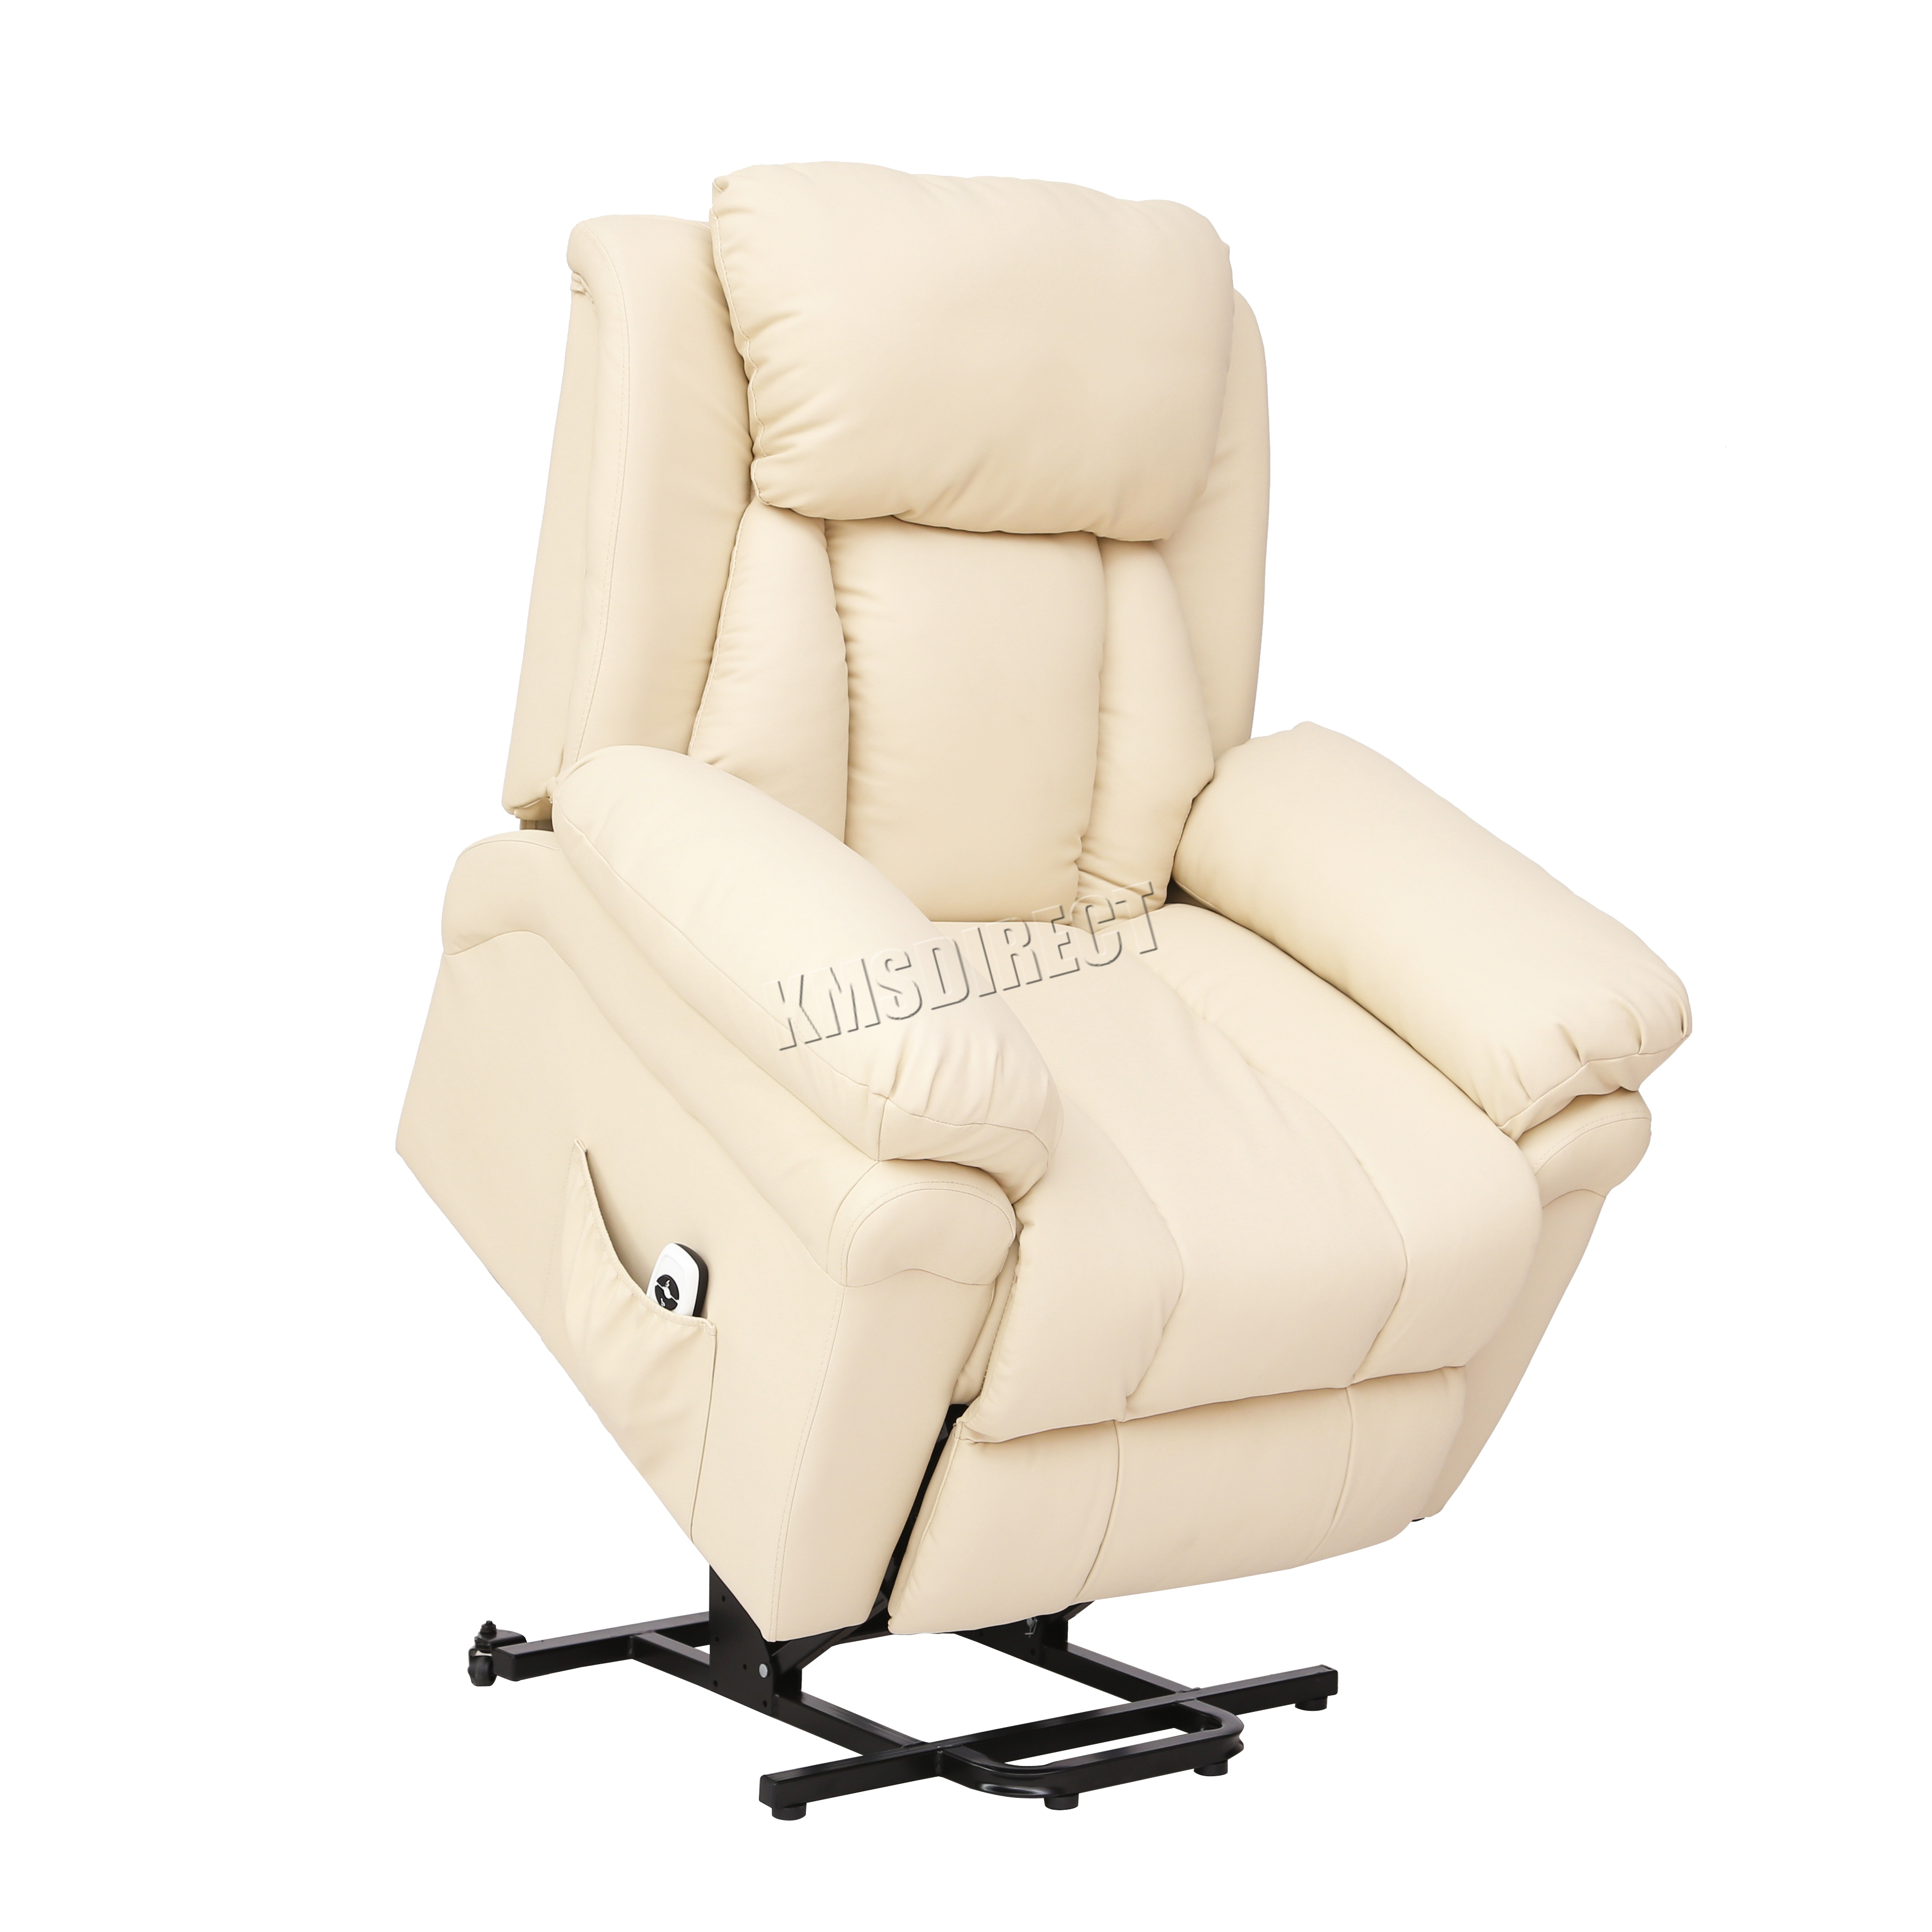 handicap lift chair recliner bistro chairs dining room faux leather massage rise mobility tilt arm